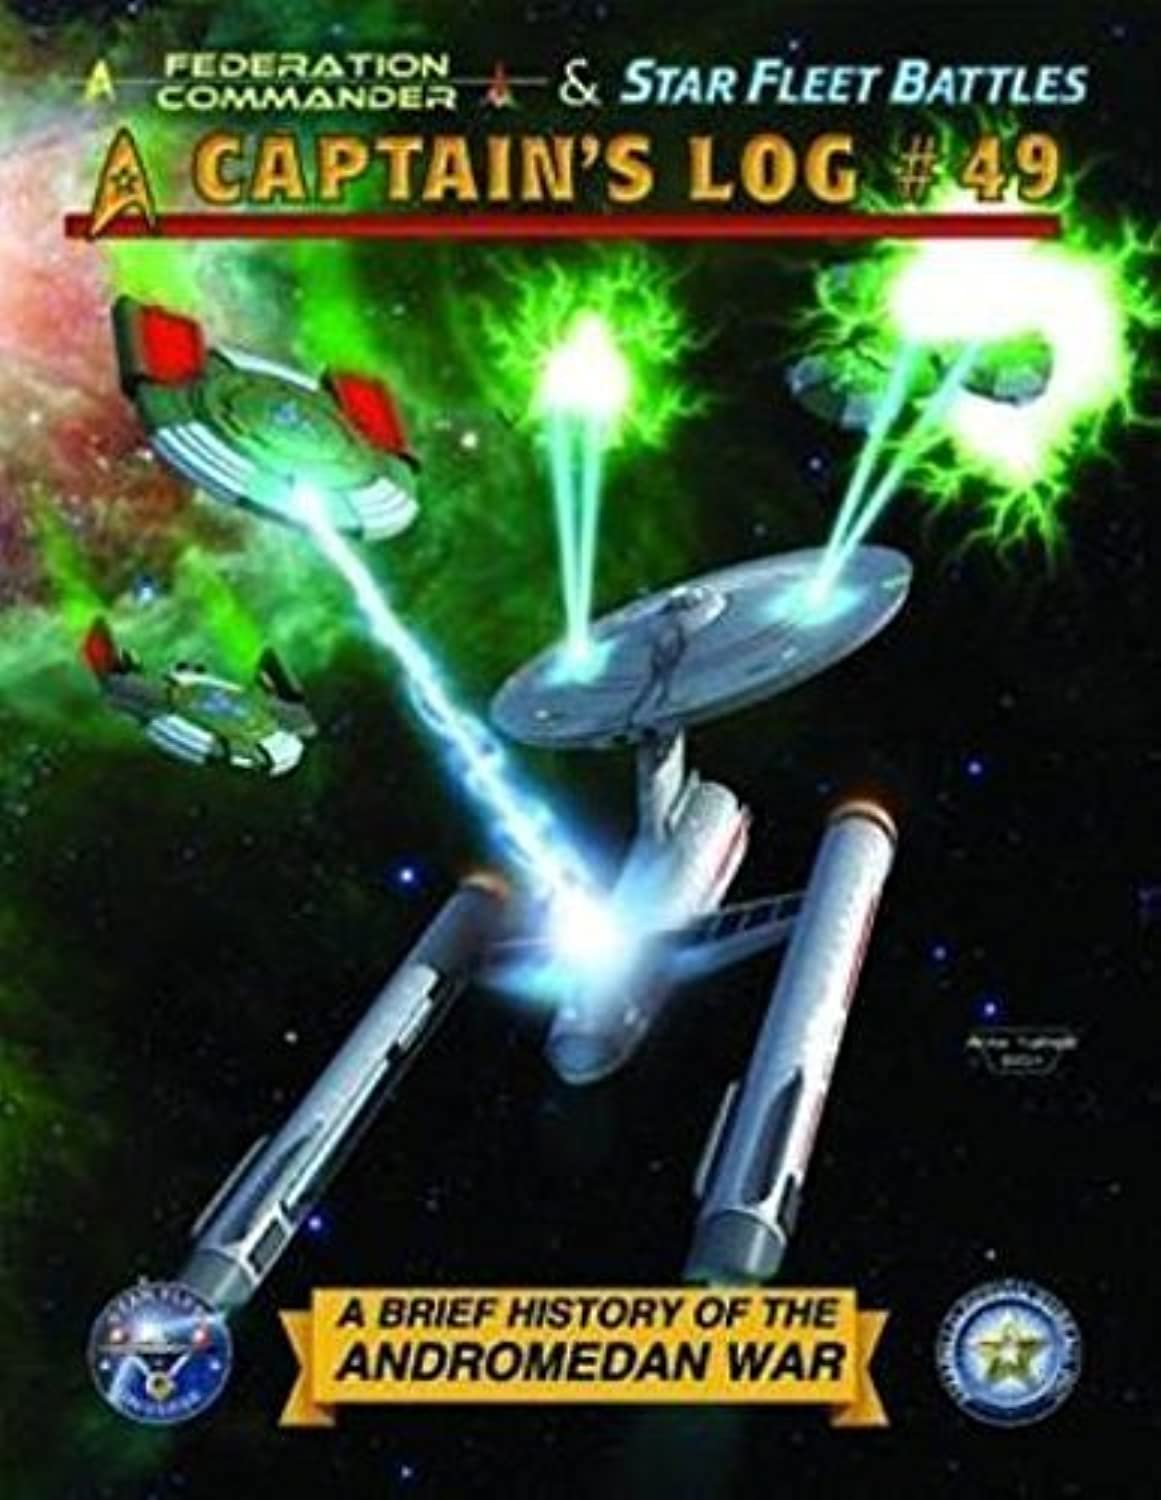 ADB  Captain's Log  49 Magazine for the Star Fleet Battles, Federation Commander, Starmada & Federation & Empire Game Series by Star Fleet Battles